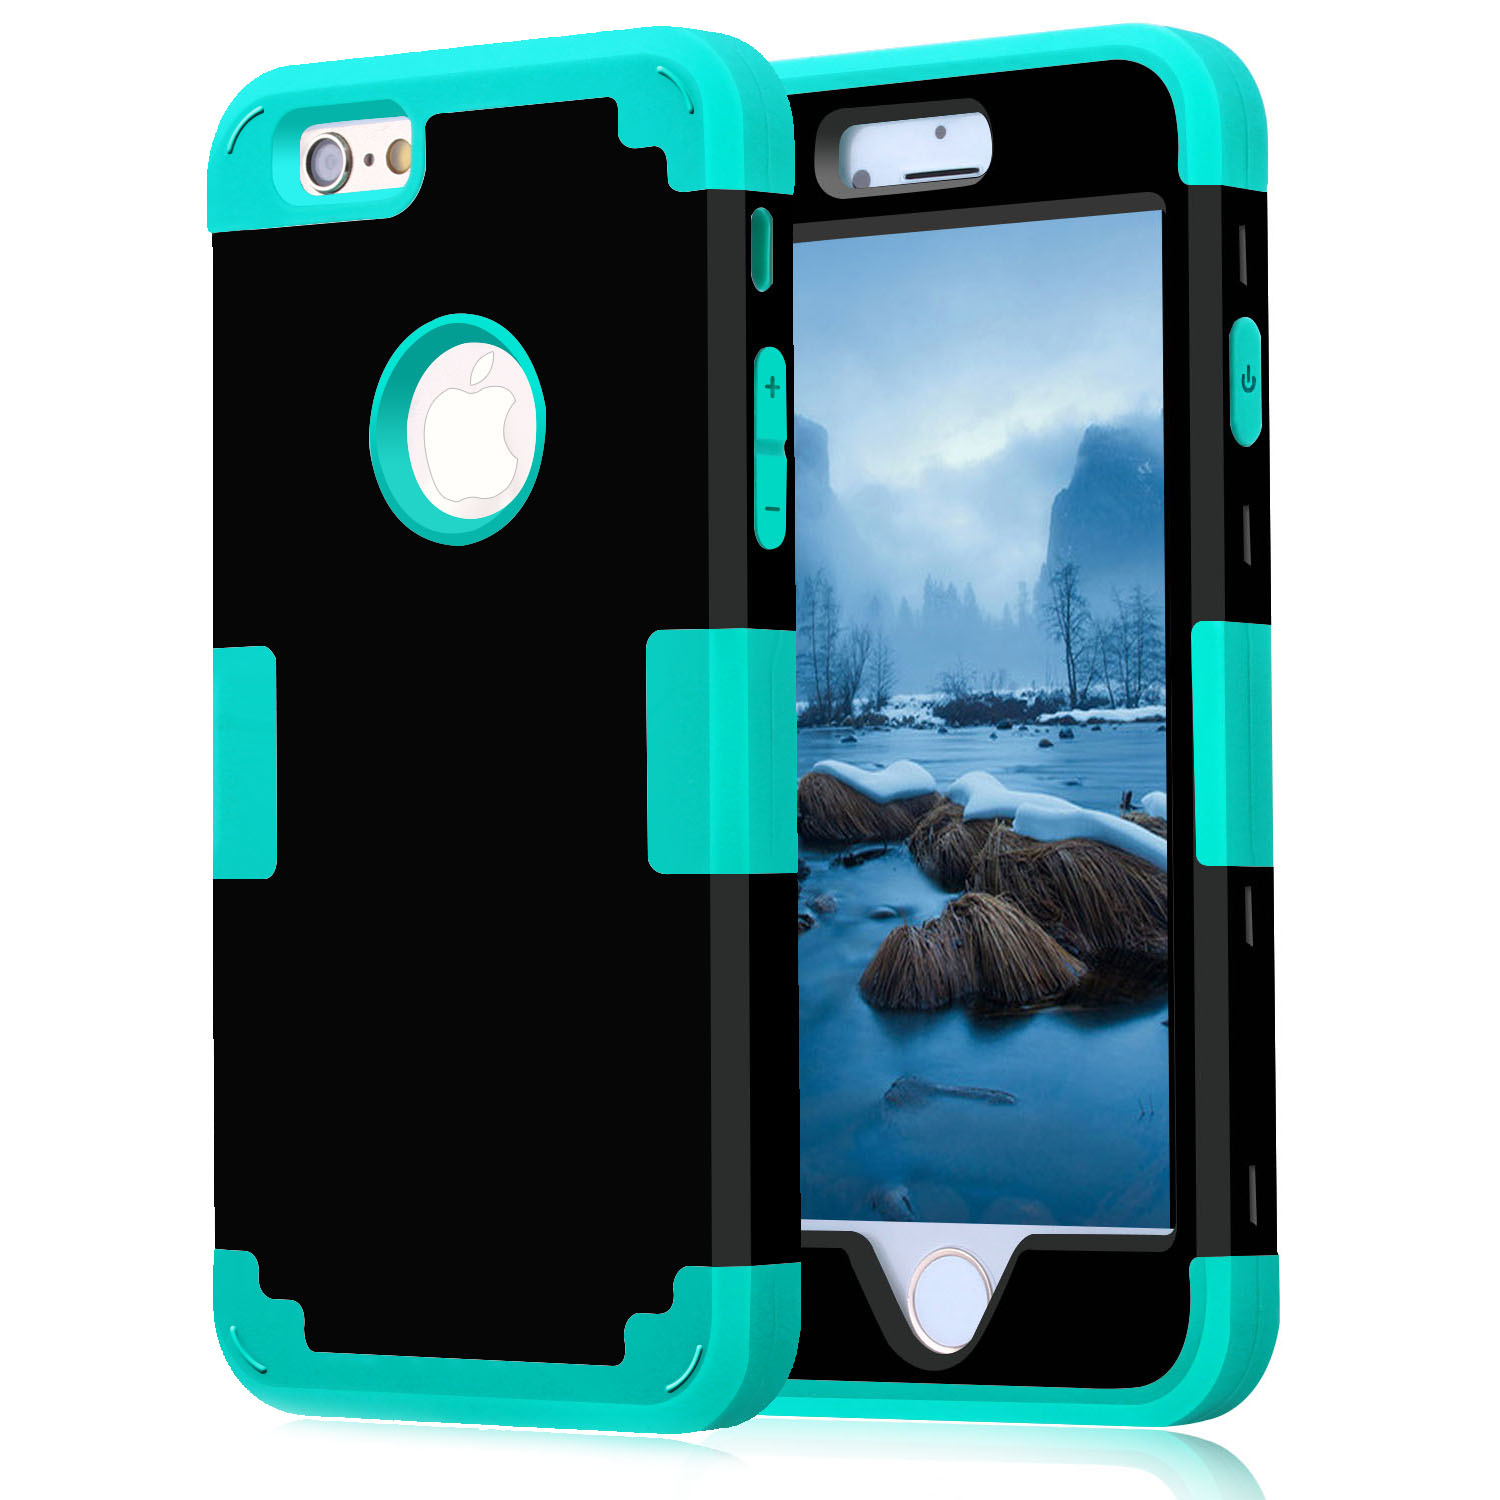 newest collection fc72e e3b61 For Apple iPhone 7 Case Shockproof Protect Hybrid Hard Rubber Impact Armor  Phone Cases For iPhone 5//5S/5C/SE/6/6S Plus/7 Cover-in Fitted Cases from  ...